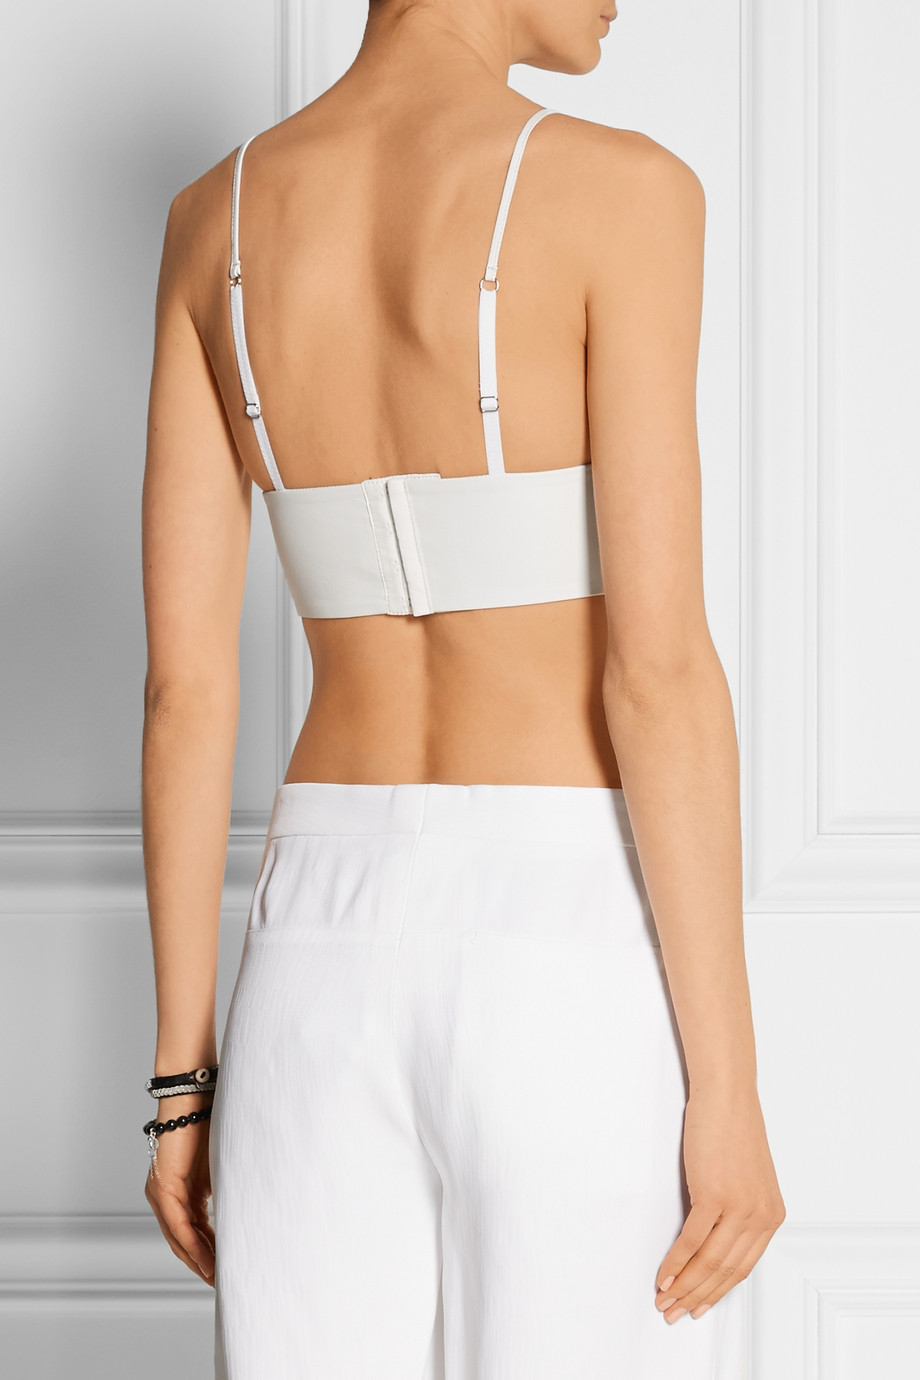 69bb39229 T By Alexander Wang Leather Bra Top in White - Lyst